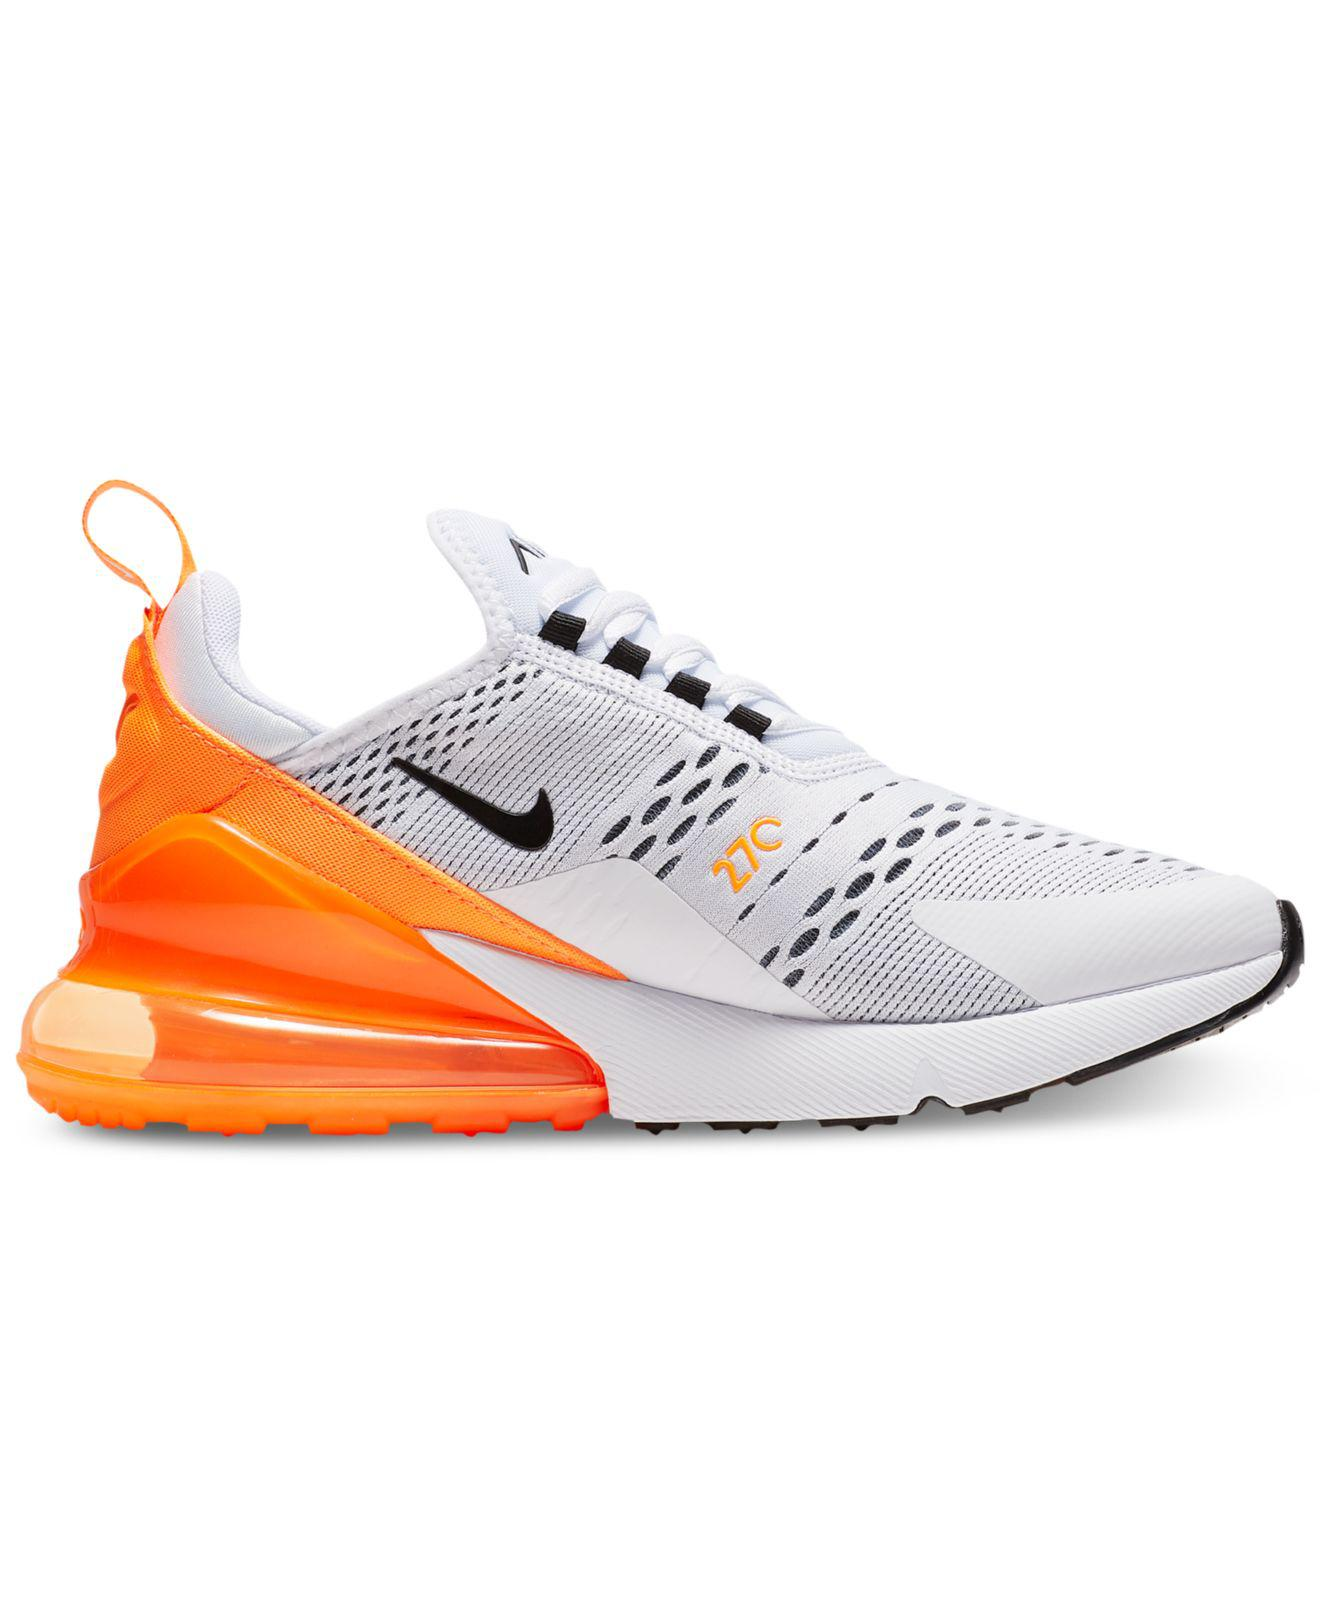 check out 51c7d 2fc1b Nike Air Max 270 Casual Sneakers From Finish Line in White - Lyst